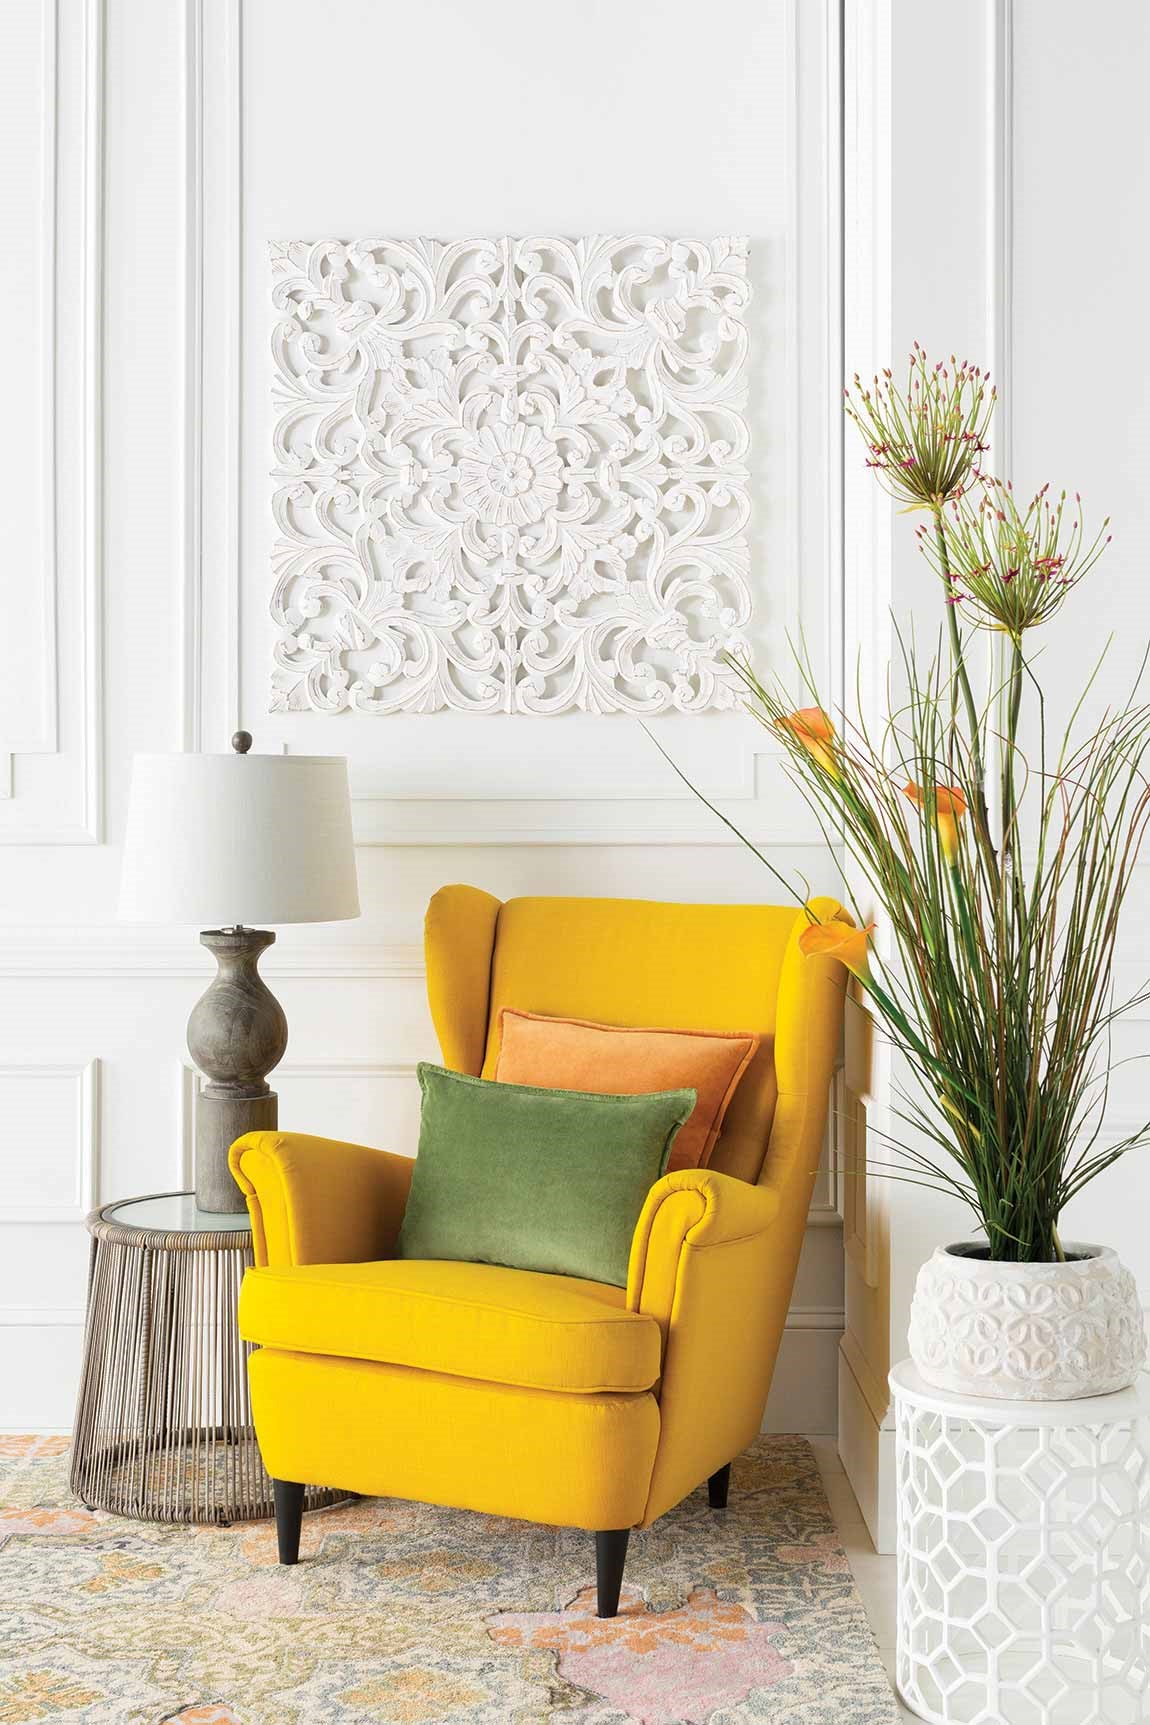 light colored room corner with yellow chair